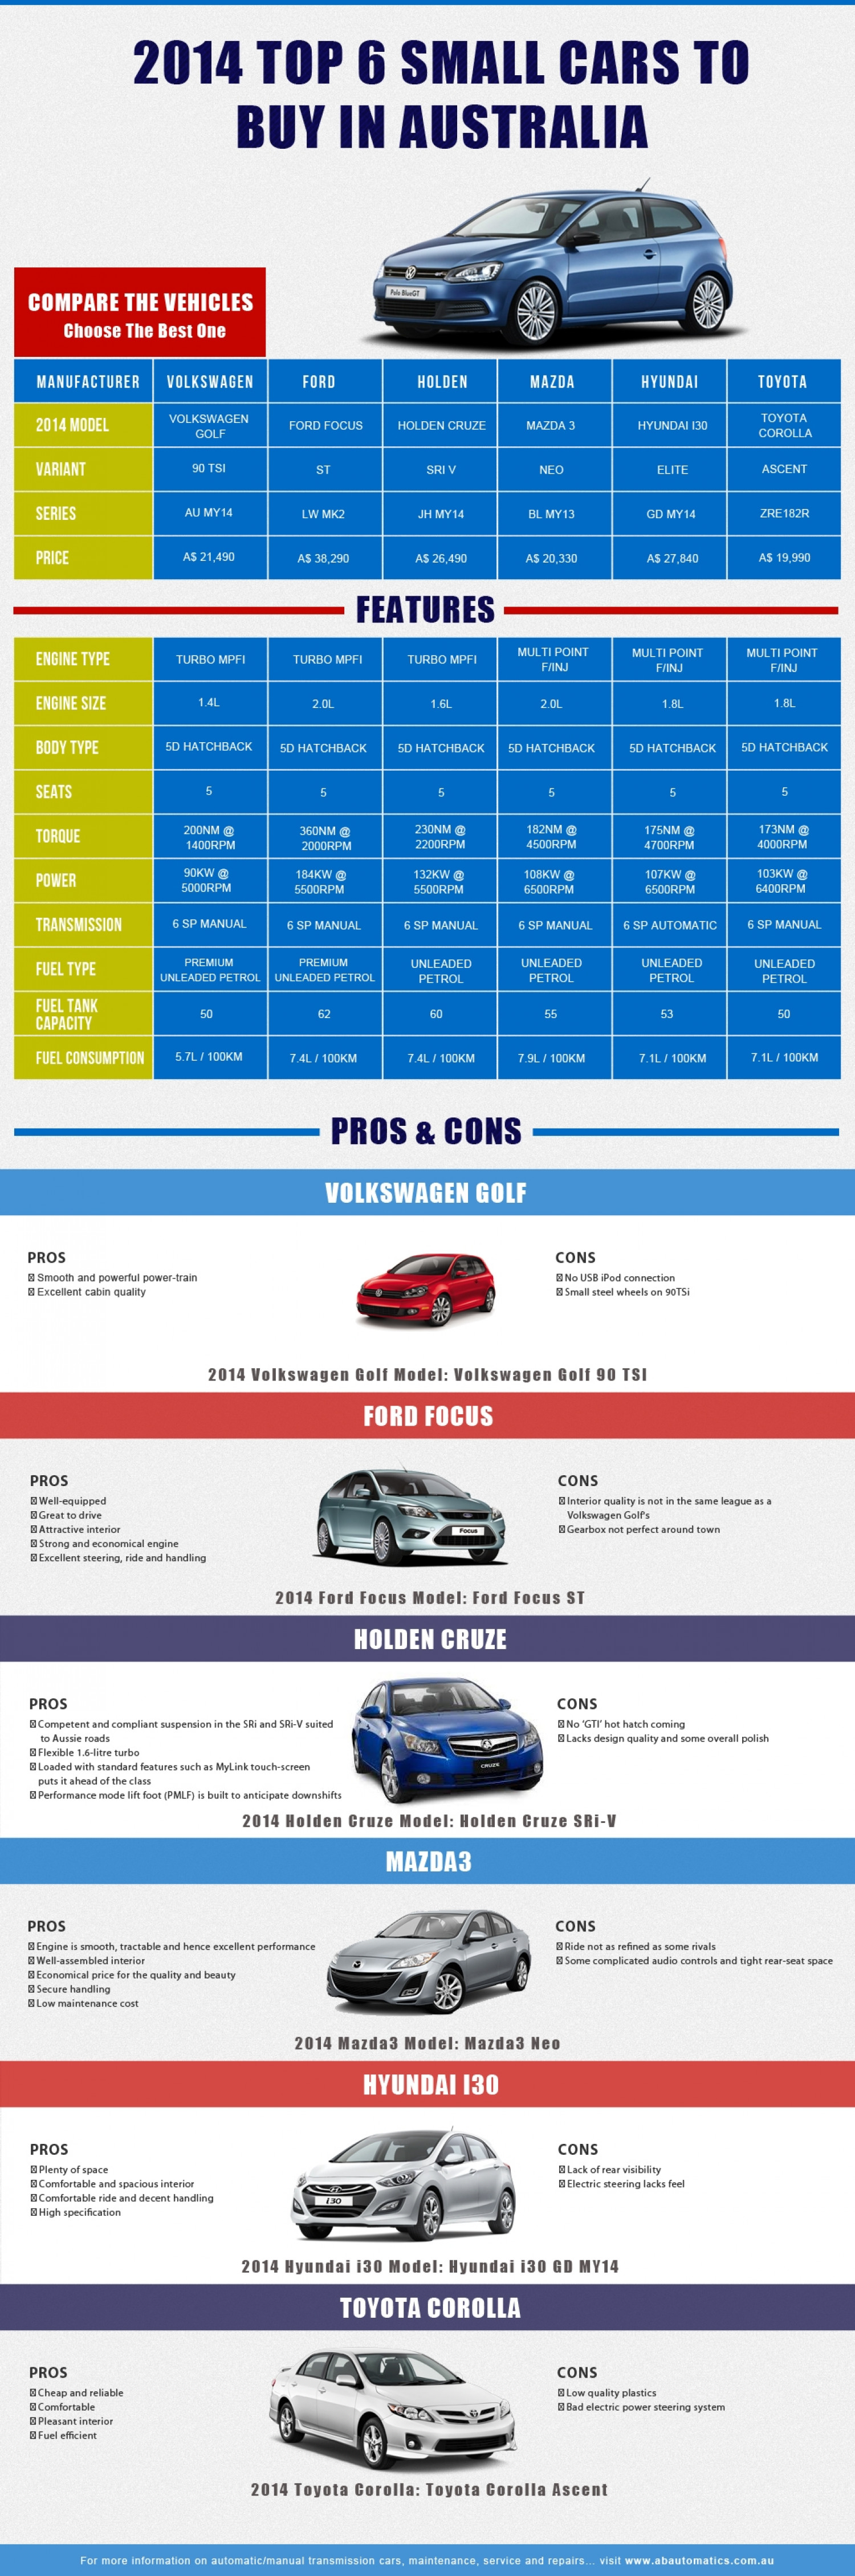 2014 Top 6 Small Cars to Buy In Australia  Infographic